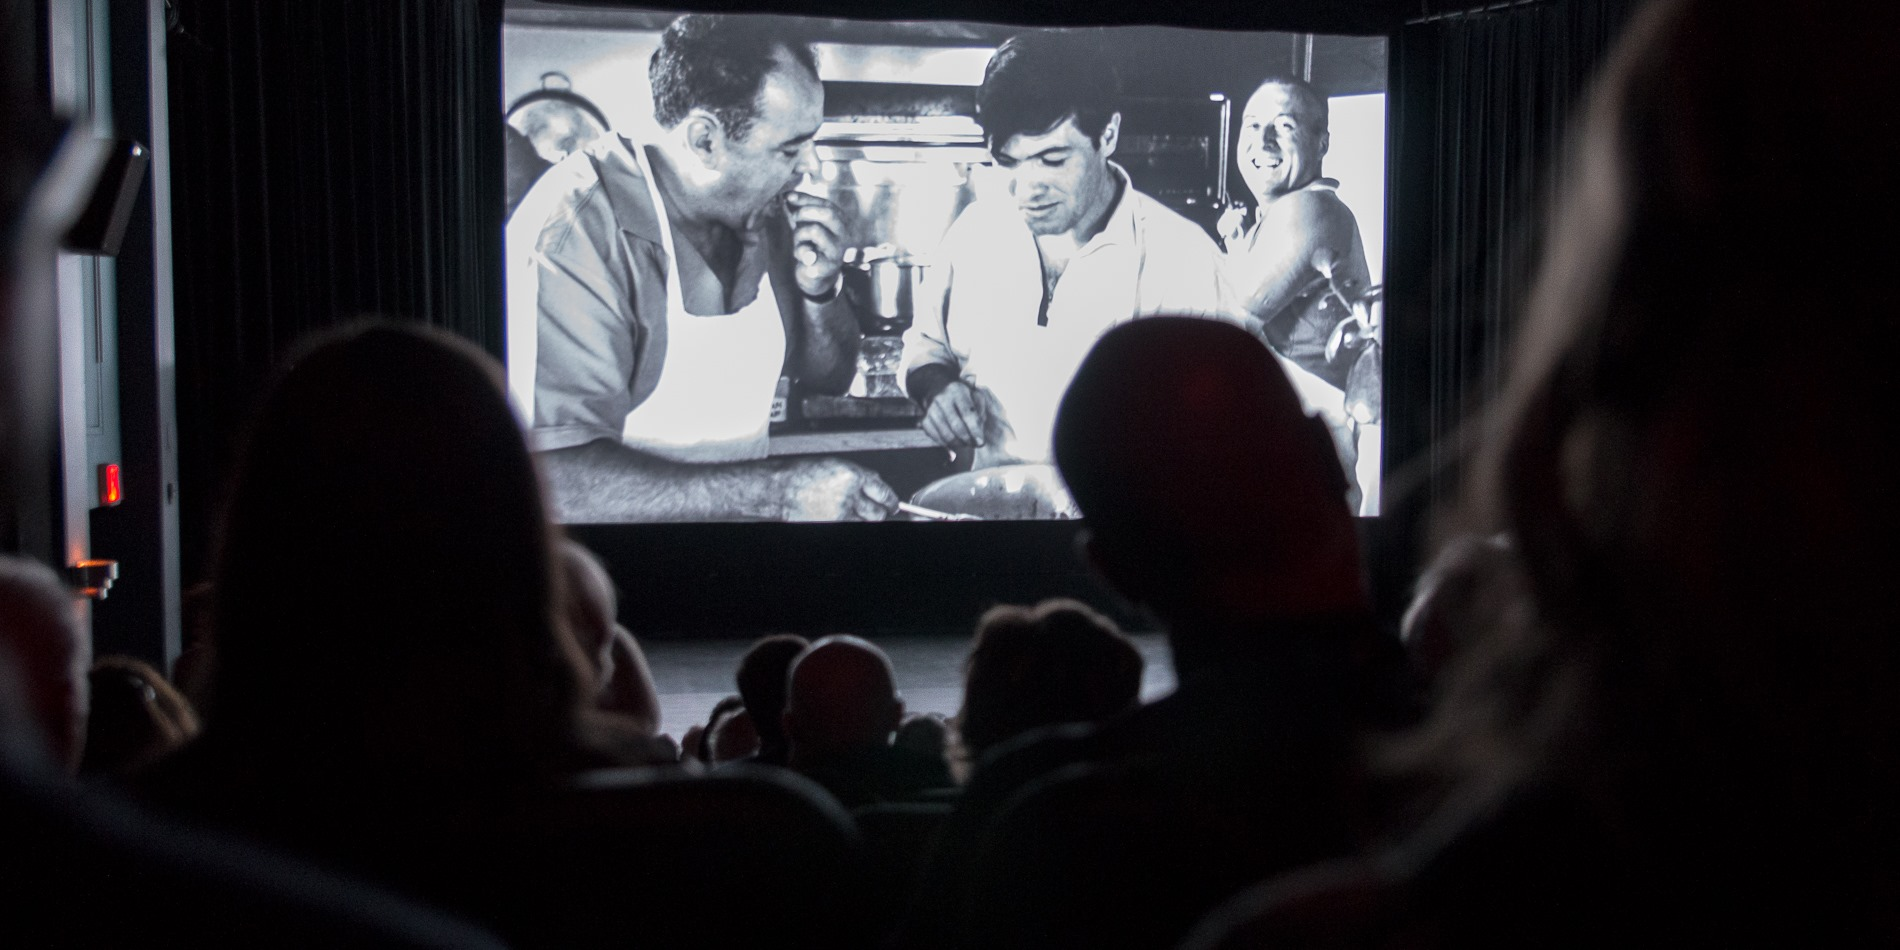 People watching a film in a theatre during Devour! The Food Film Fest